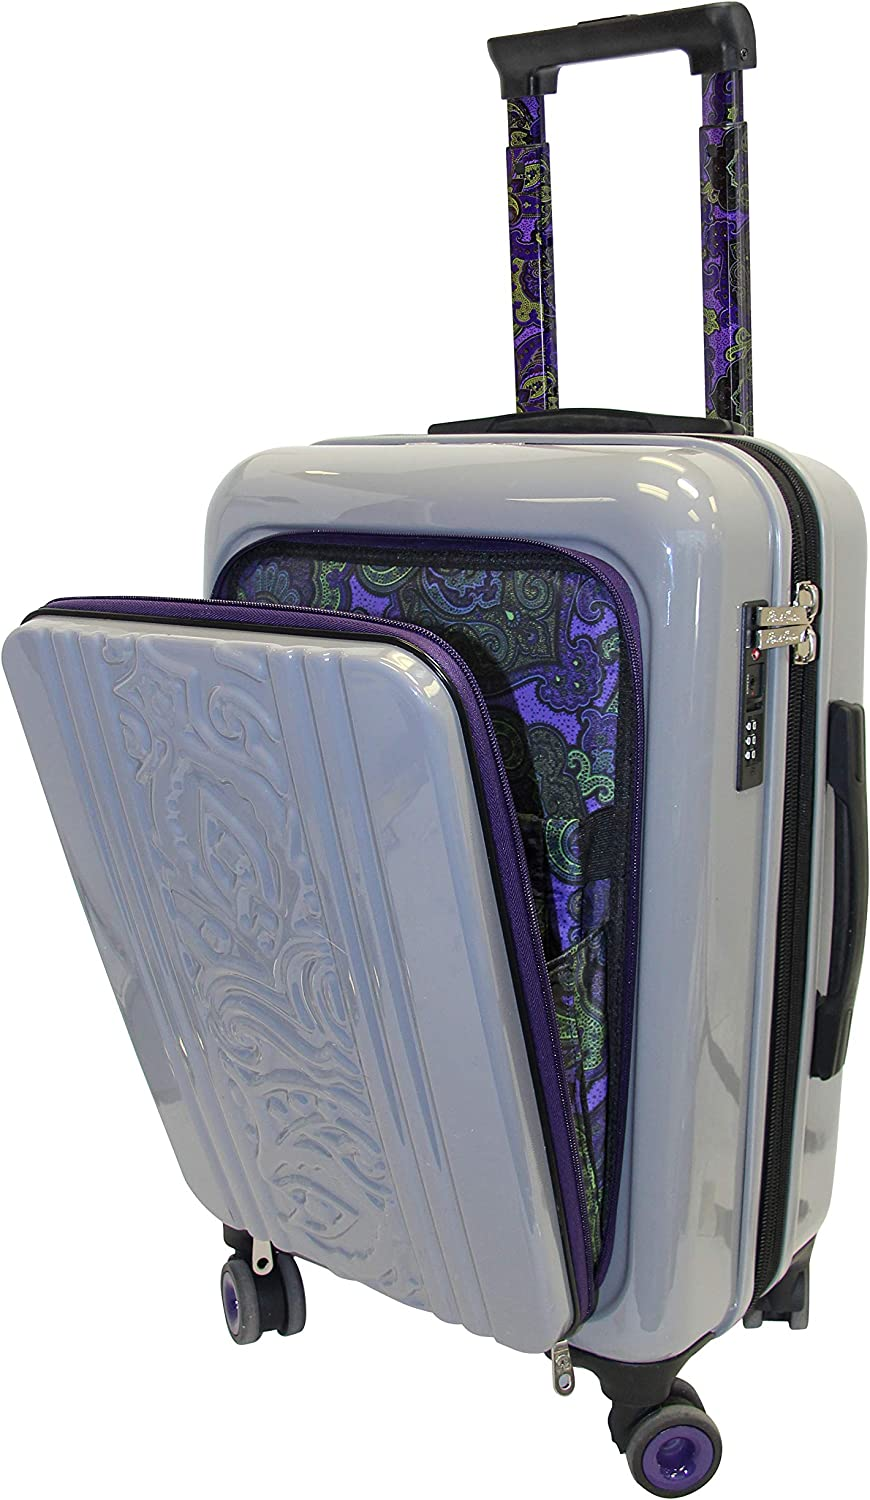 Robert Graham Carry-on Suitcase Hardside Luggage w/Easy Access Laptop Pocket, Grey and Bold Purple Paisley Lining